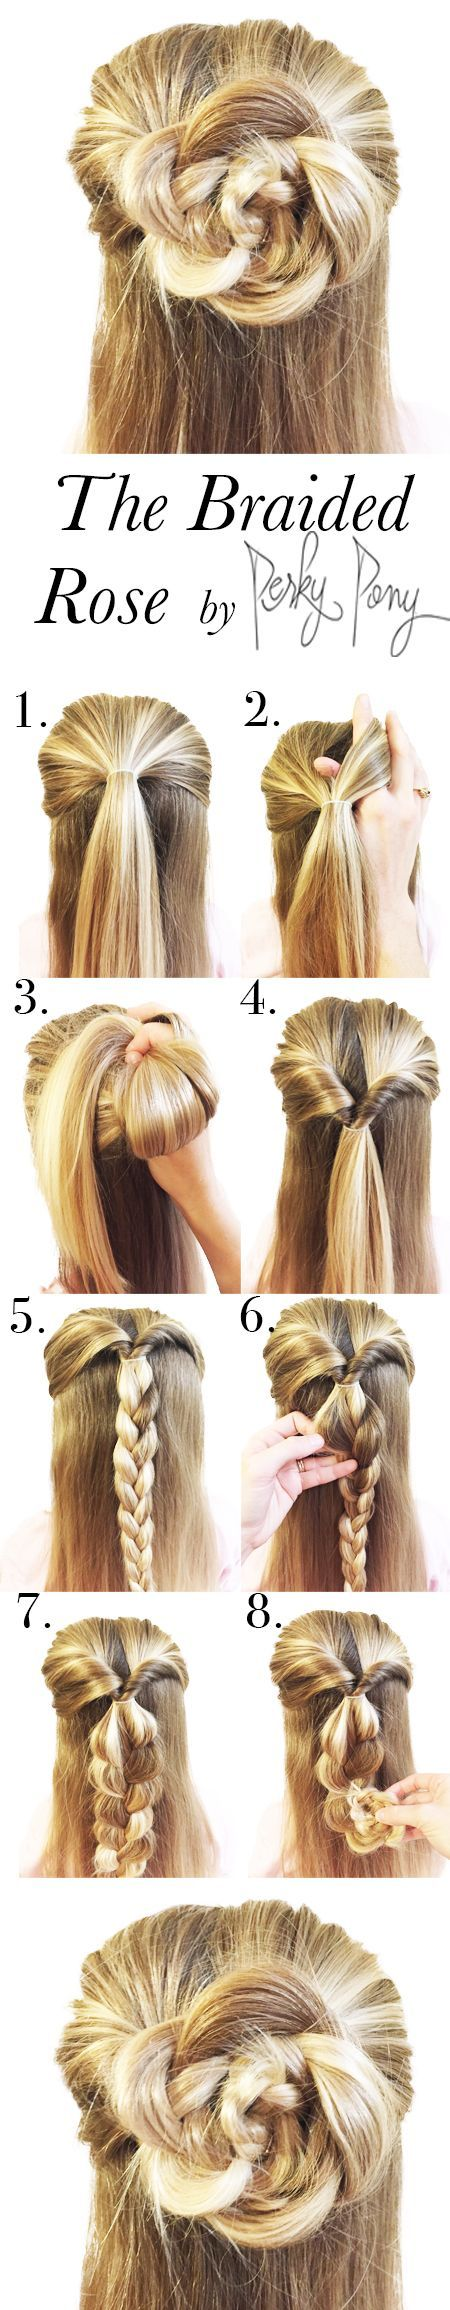 simple and easy hairstyles for your daily look braid hairstyles